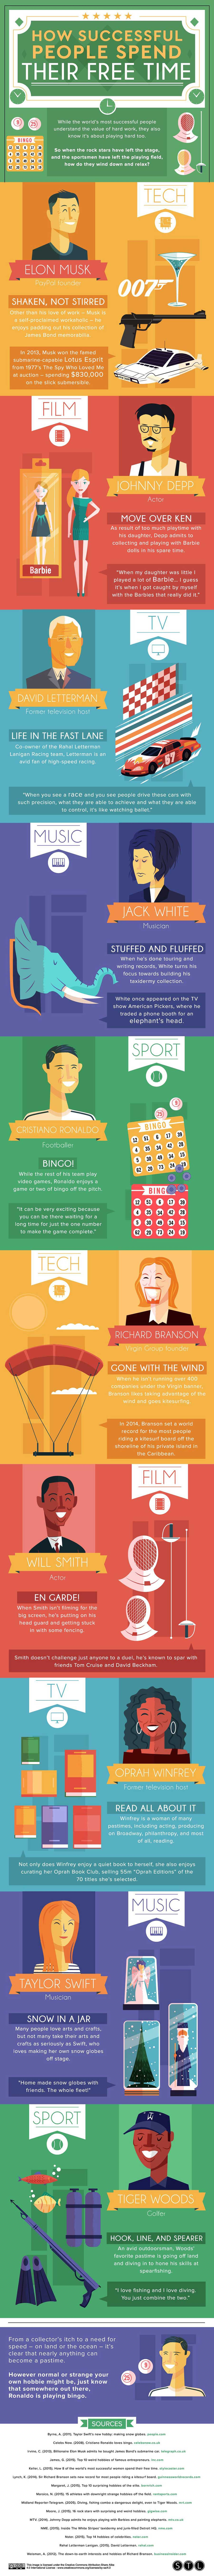 how-successful-people-spend-their-free-time